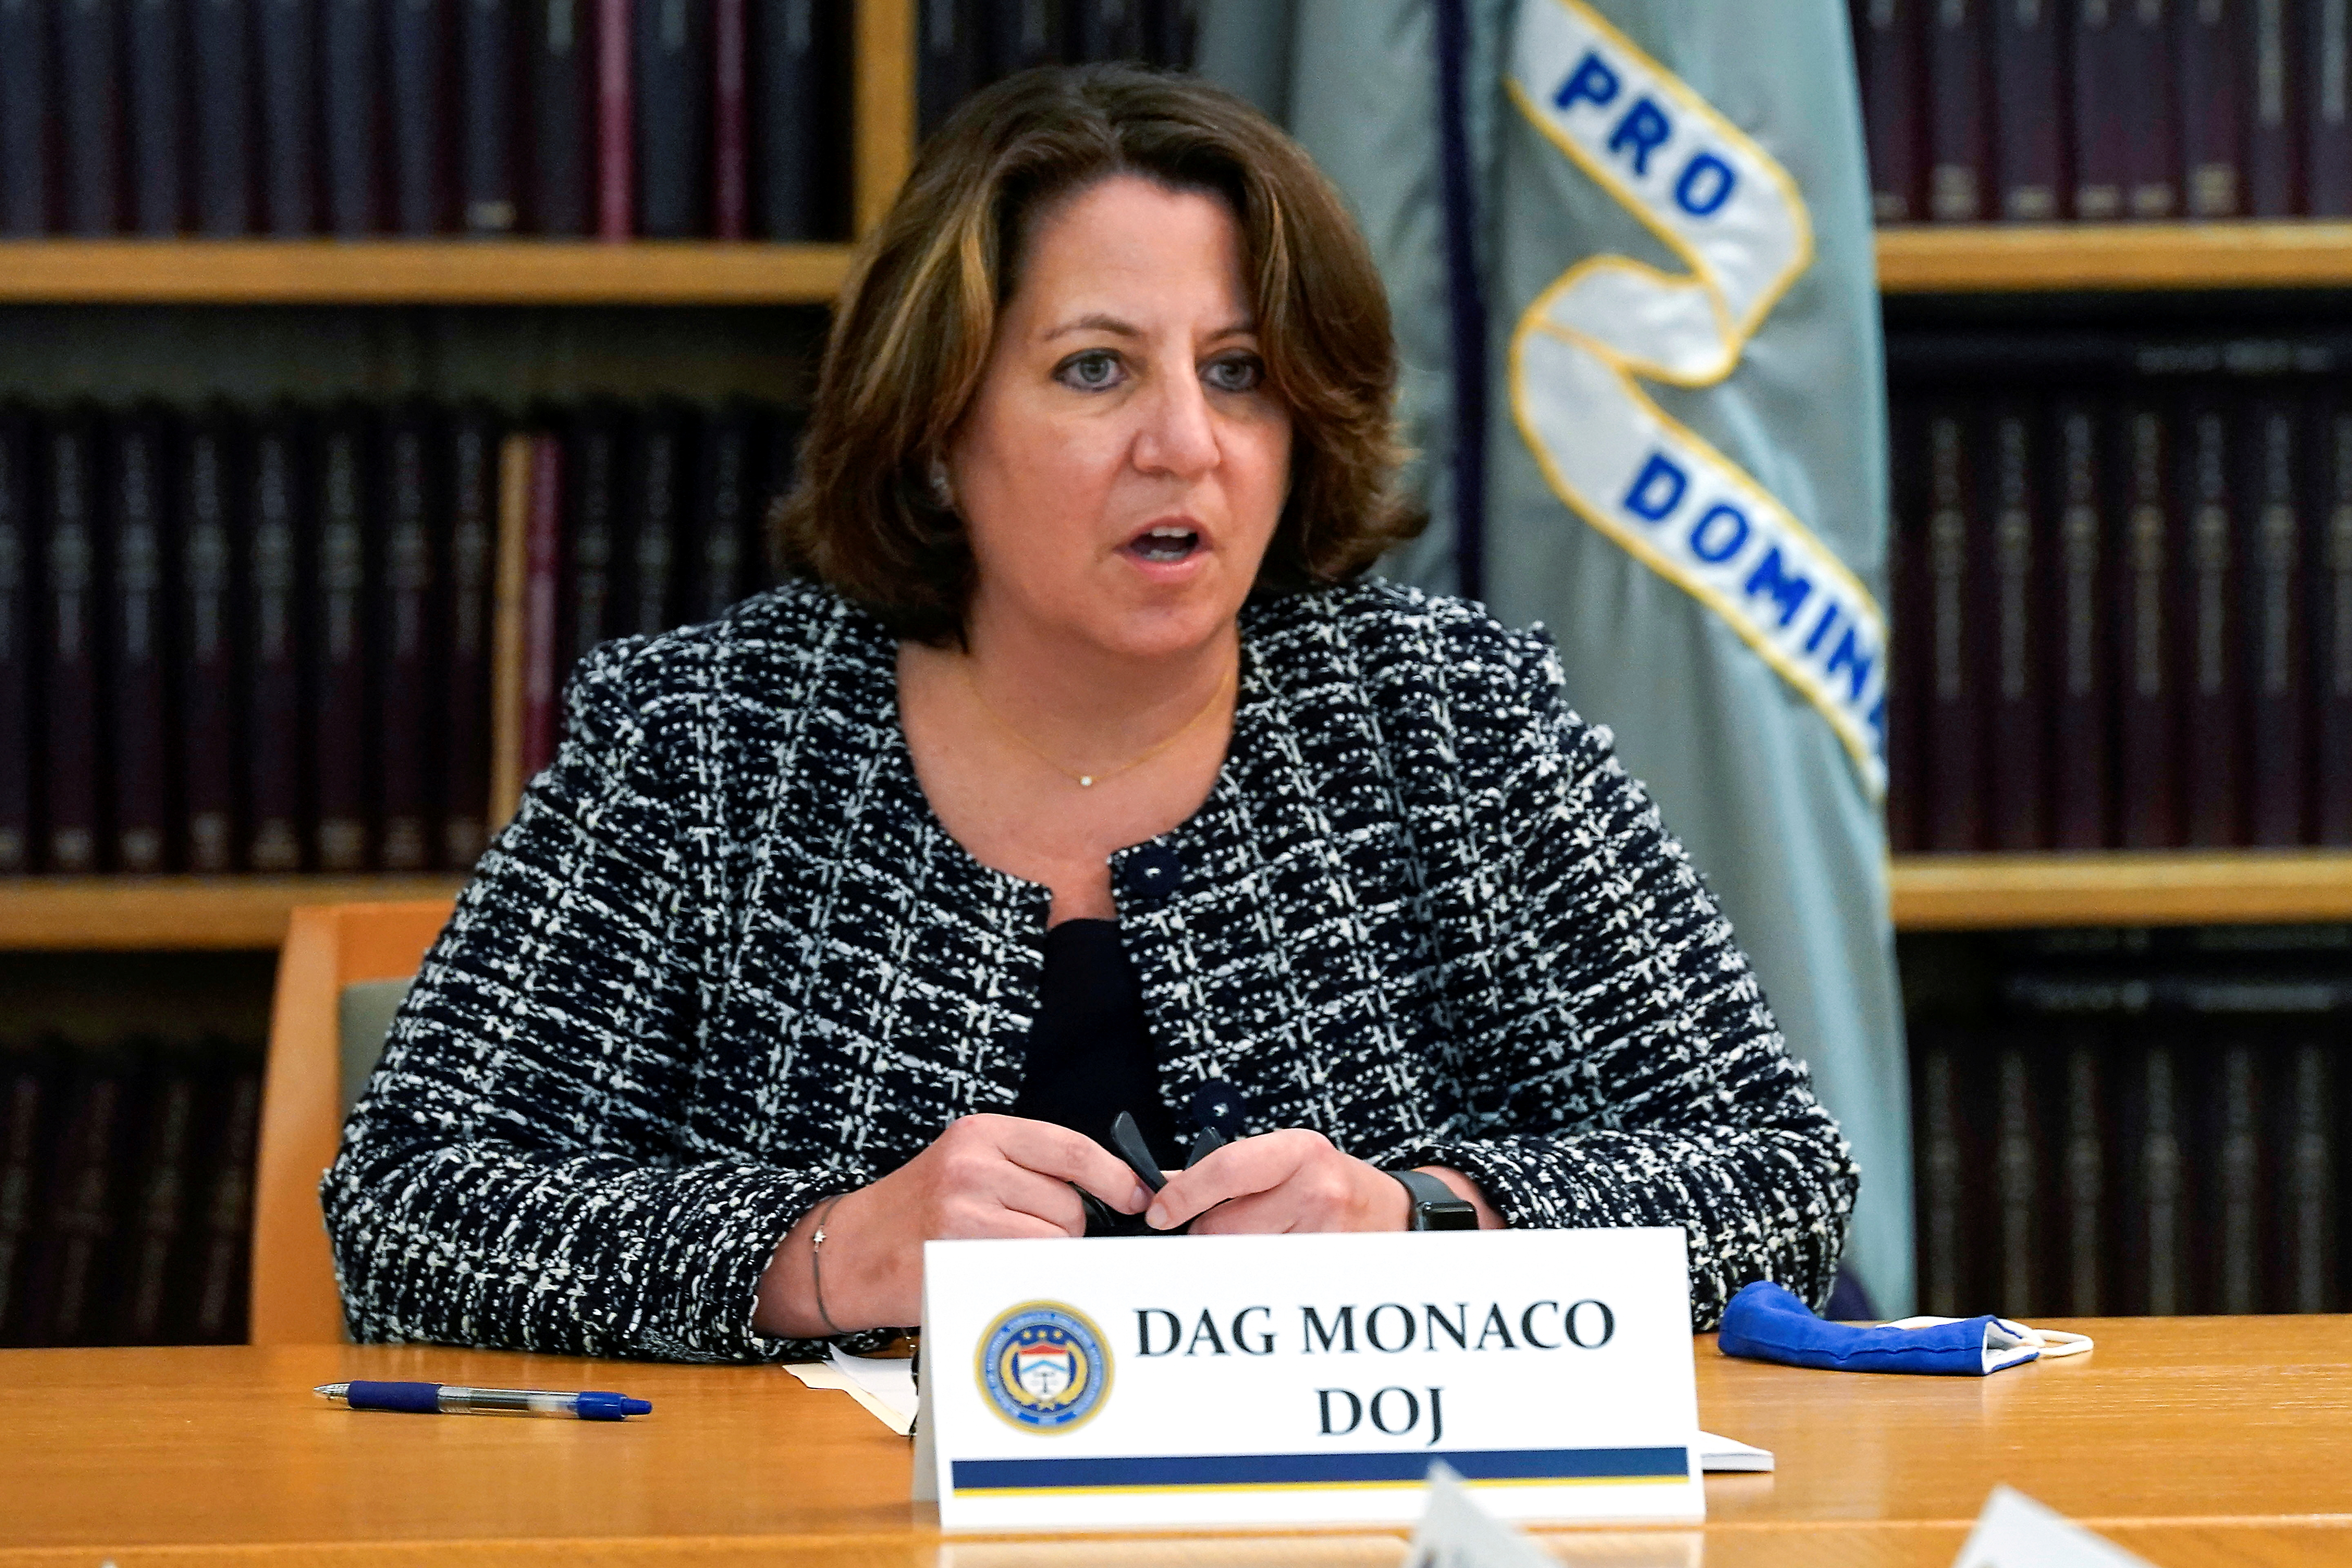 U.S. Deputy Attorney General Lisa Monaco delivers opening remarks at a meeting with federal and local law enforcement to discuss their work on the recently announced firearms trafficking strike forces, in New York, U.S., August 4, 2021. Richard Drew/Pool via REUTERS/File Photo